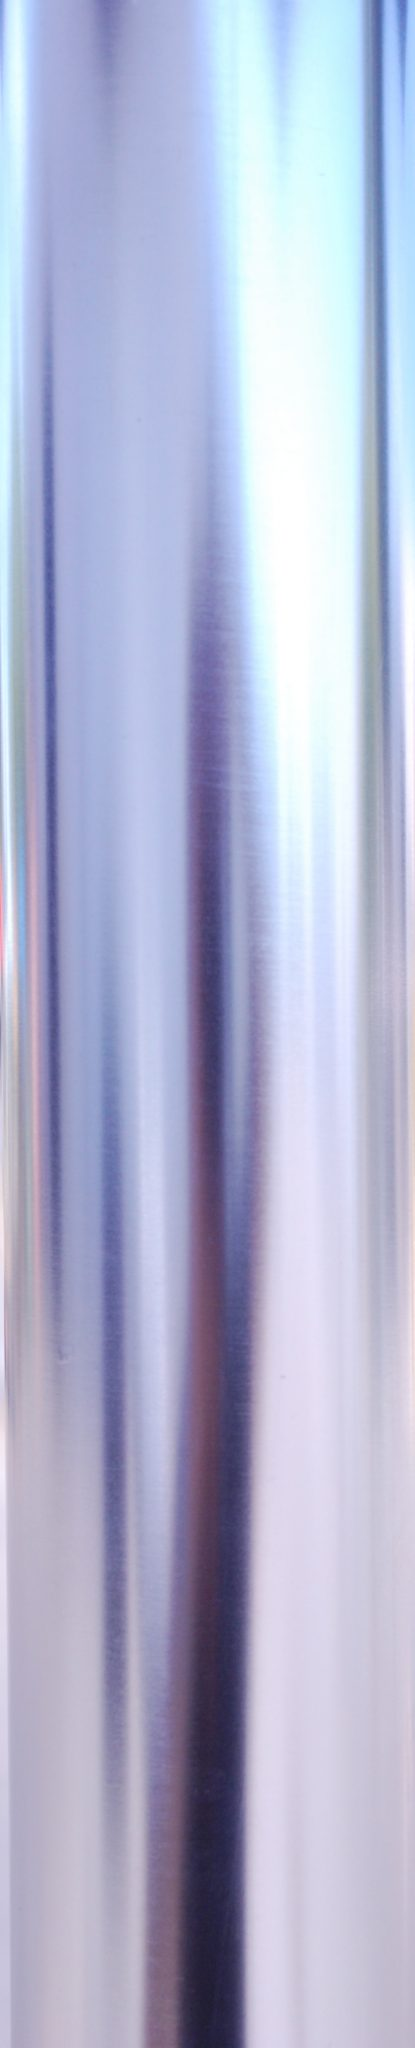 Galtech Silver Finish Pole